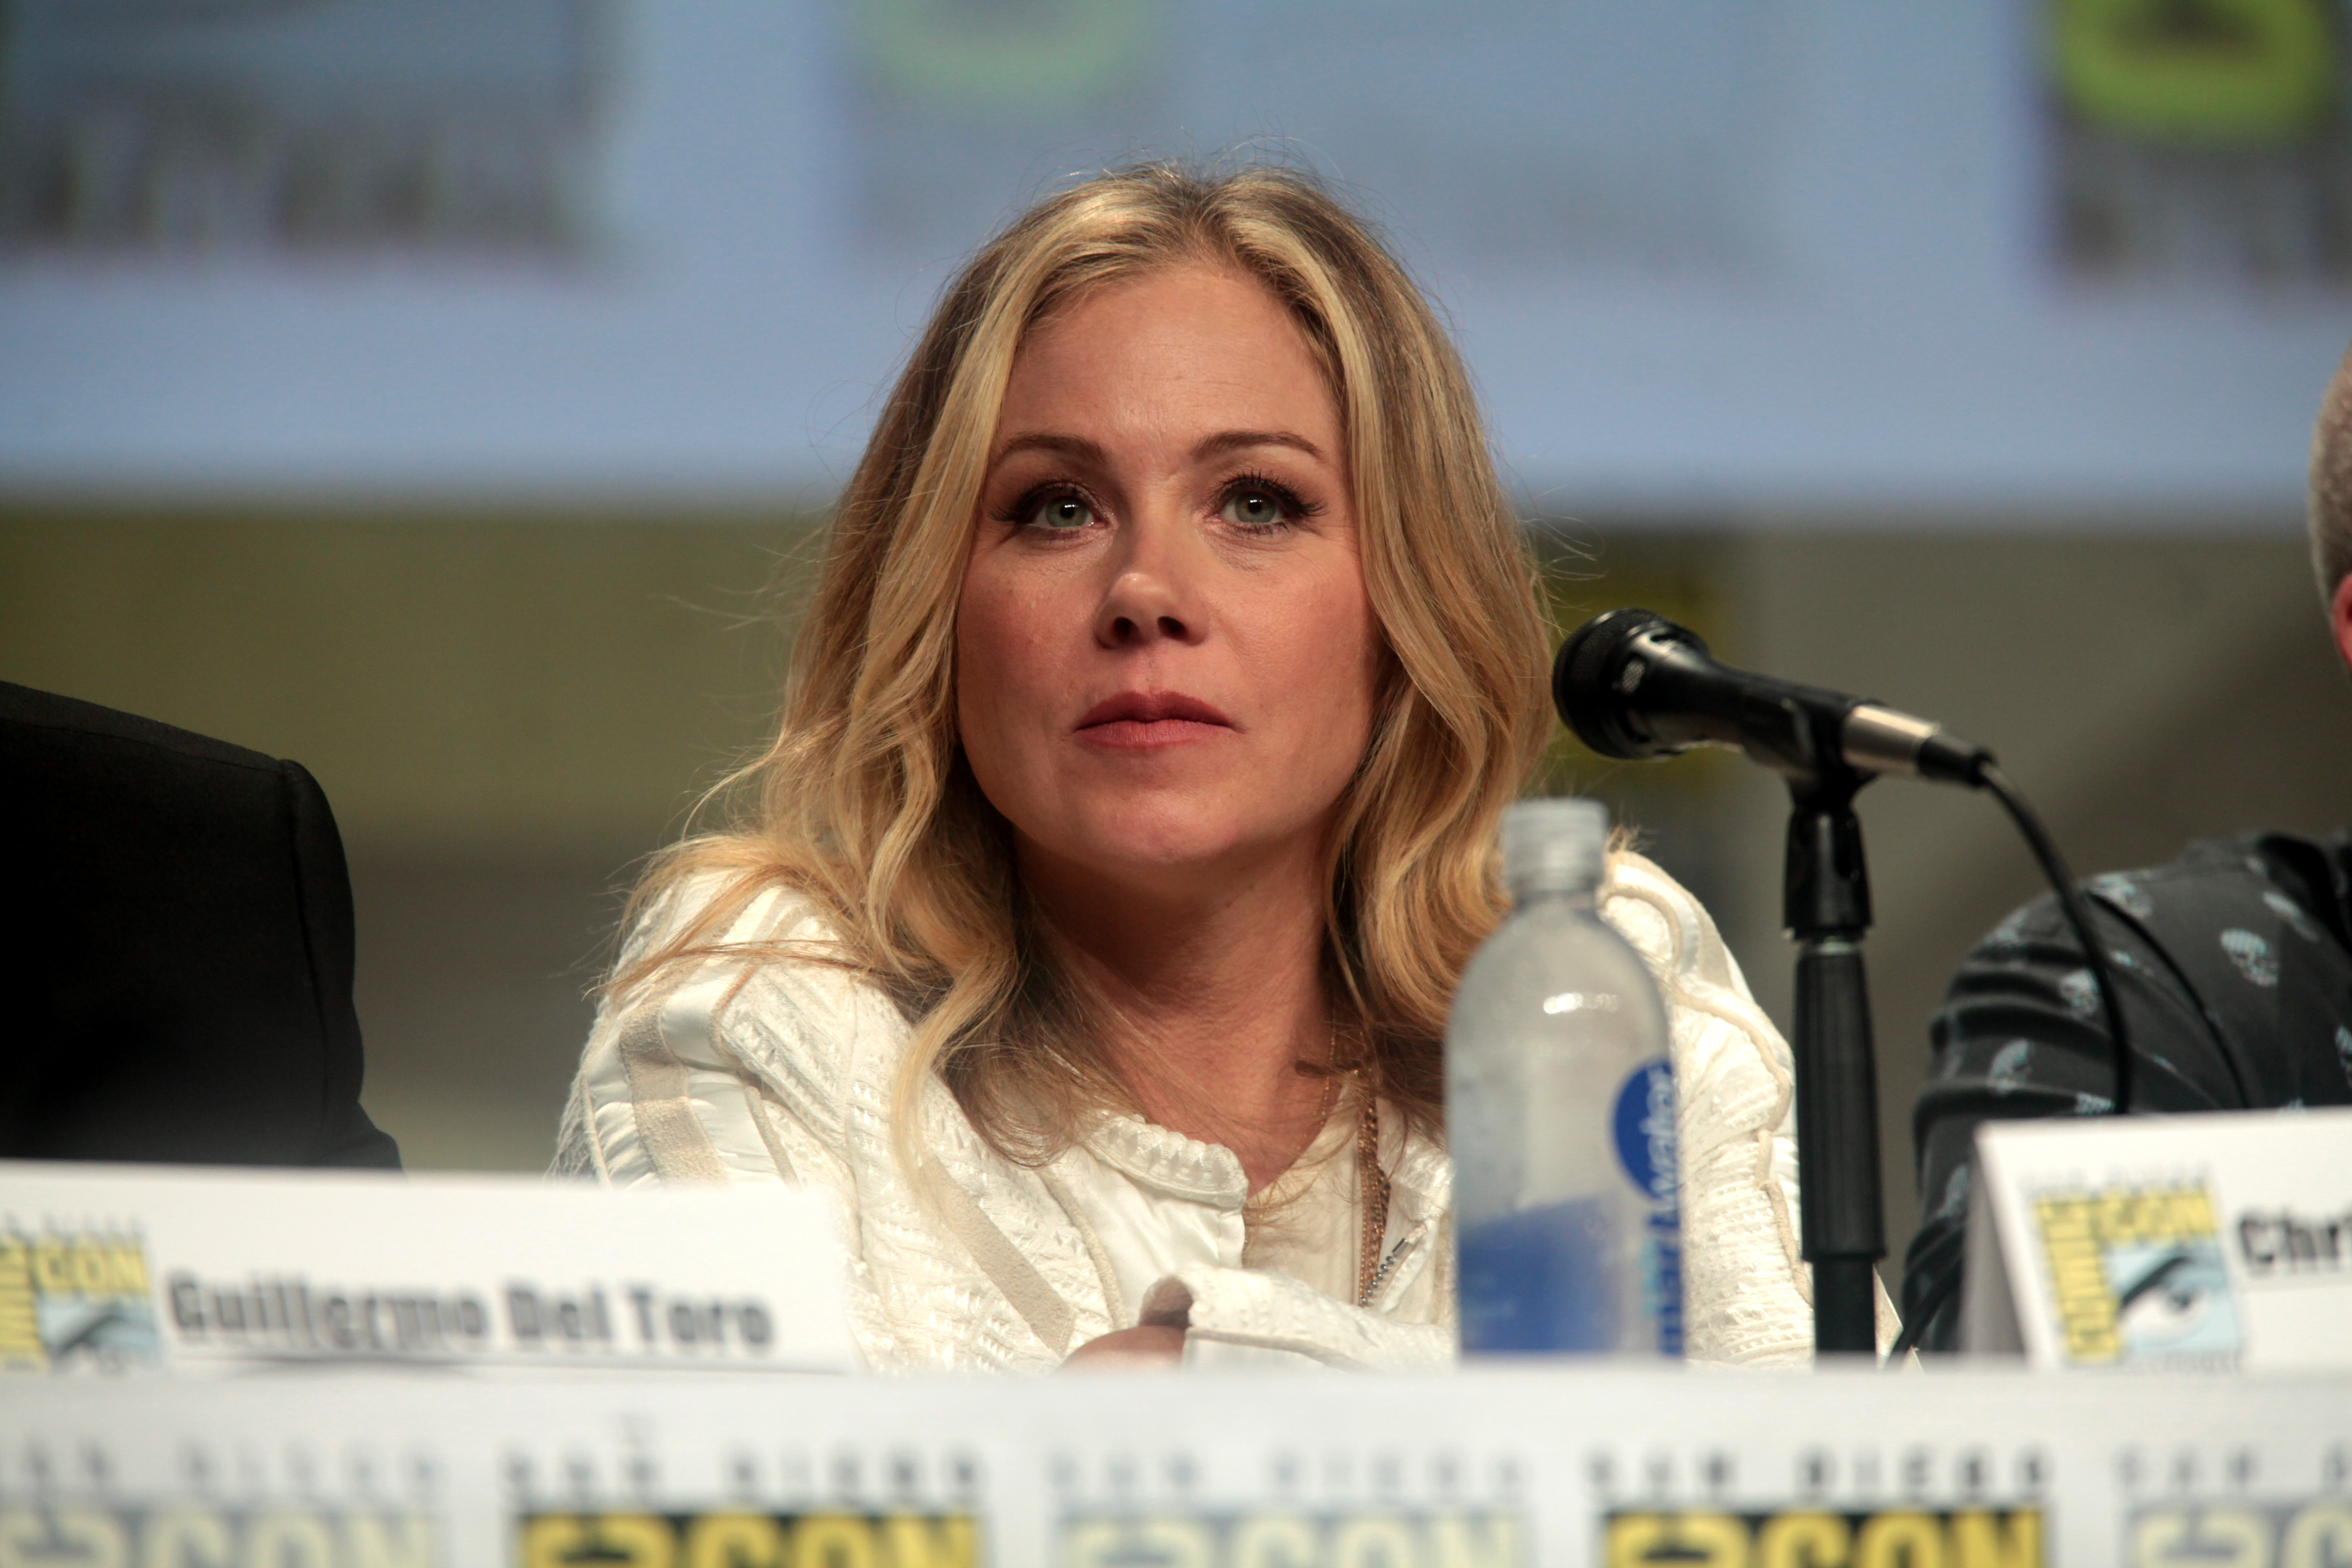 Who is christina applegate dating now